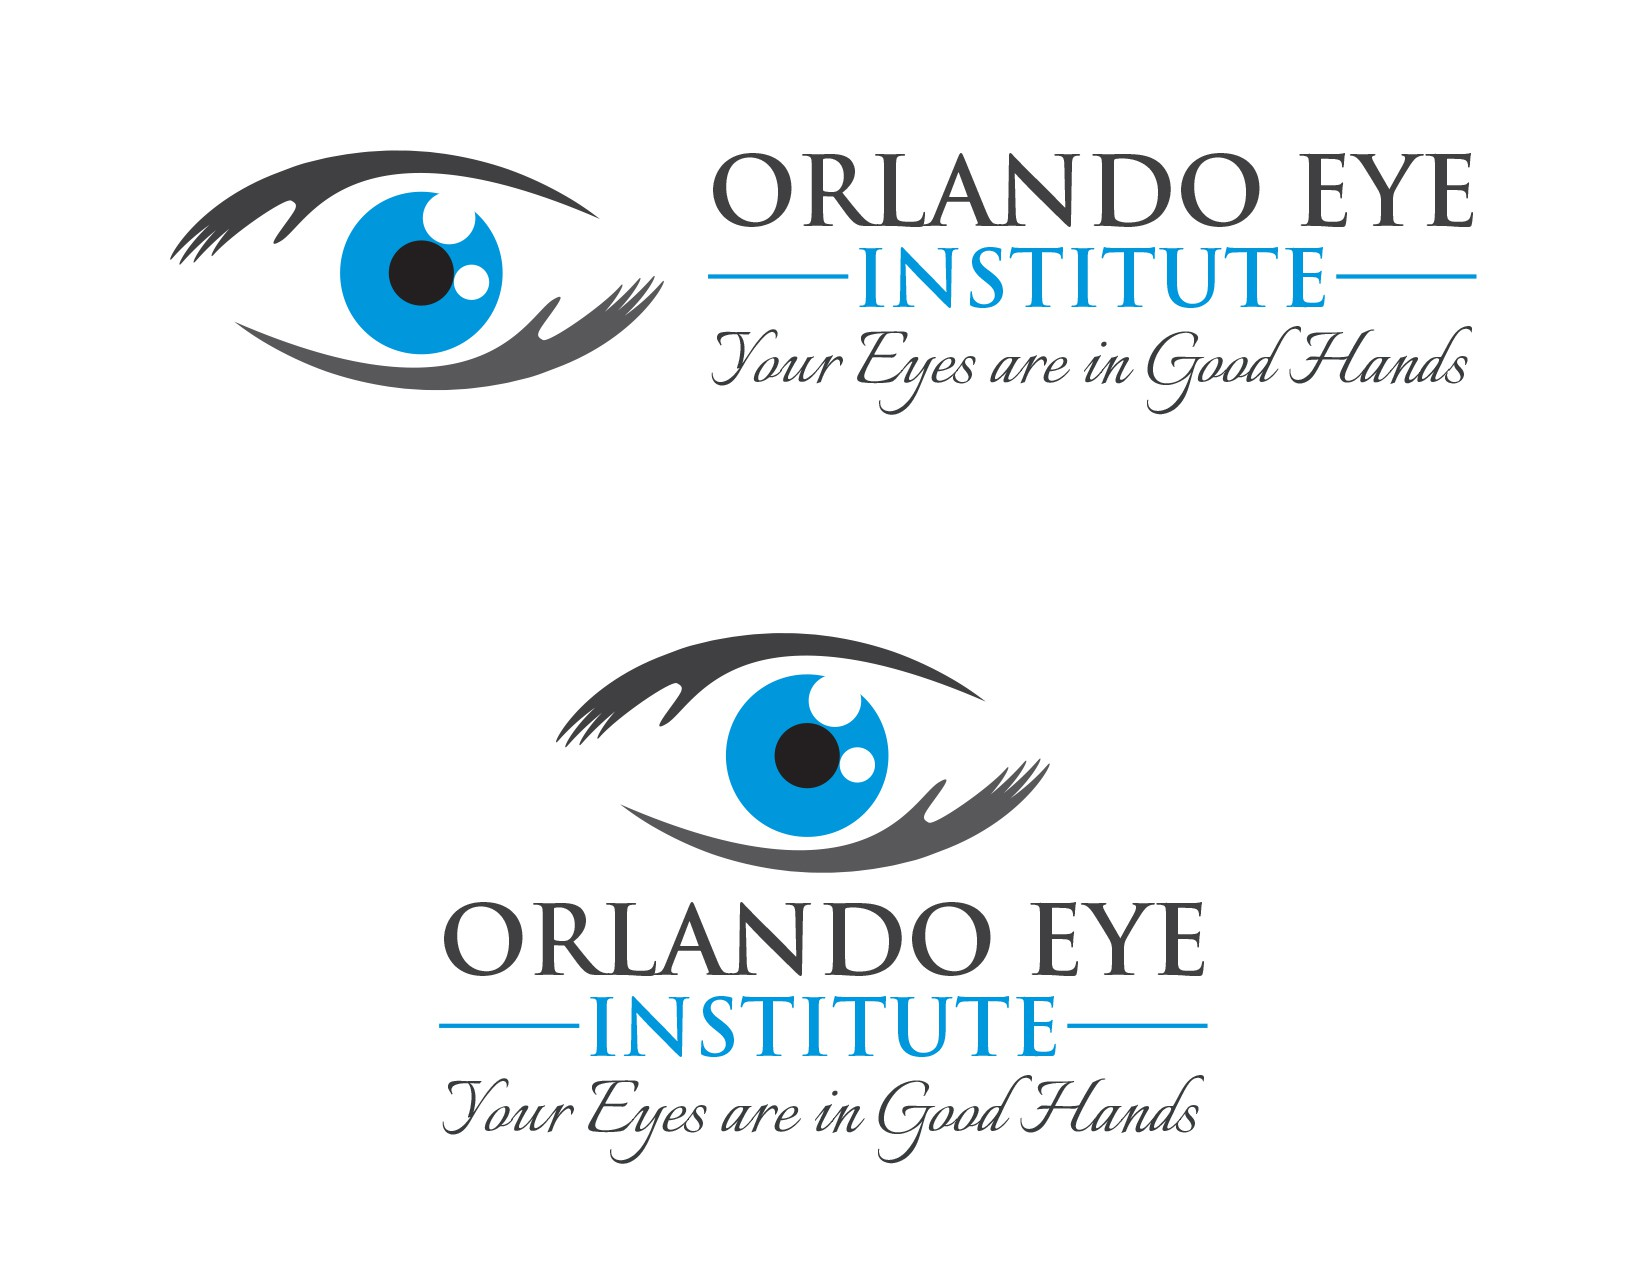 Help Orlando Eye Institute with a new logo